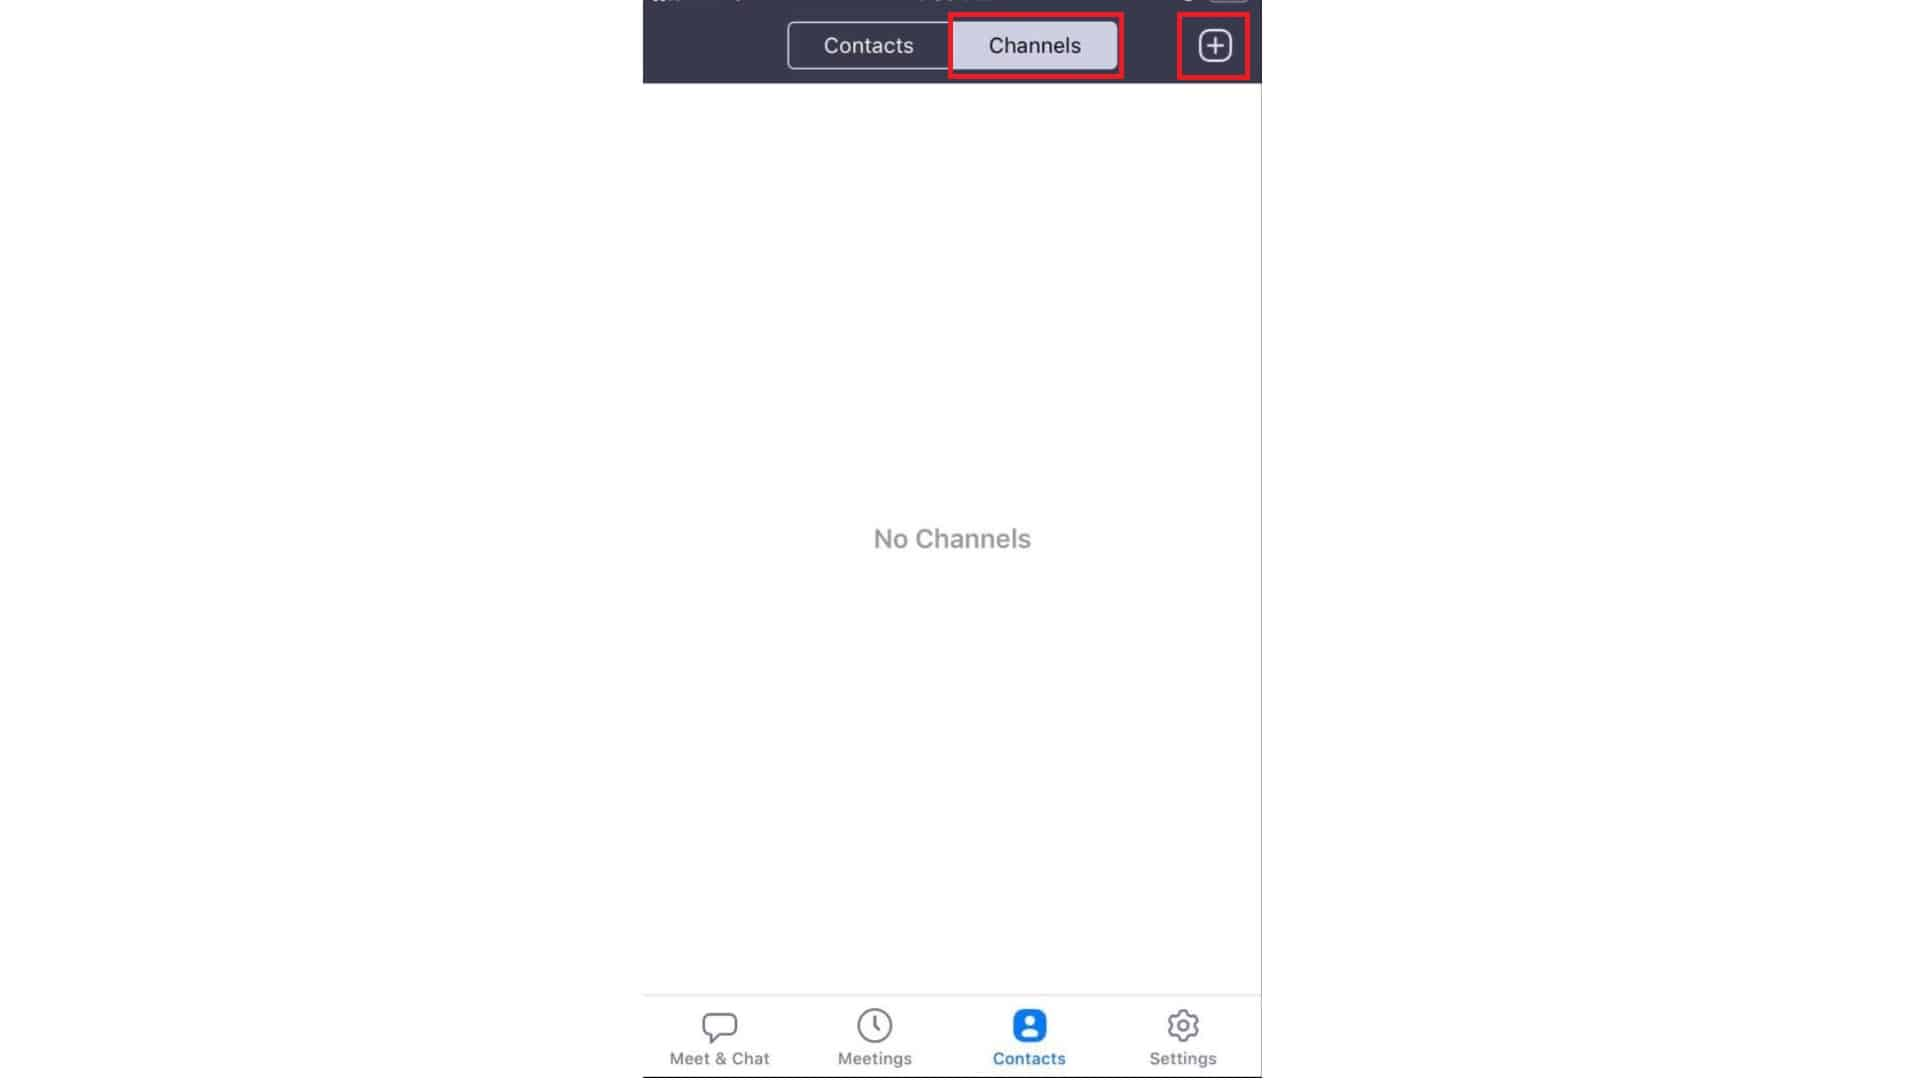 How-to-Join a-Public-Channel-on-Zoom-for-iOS-2020